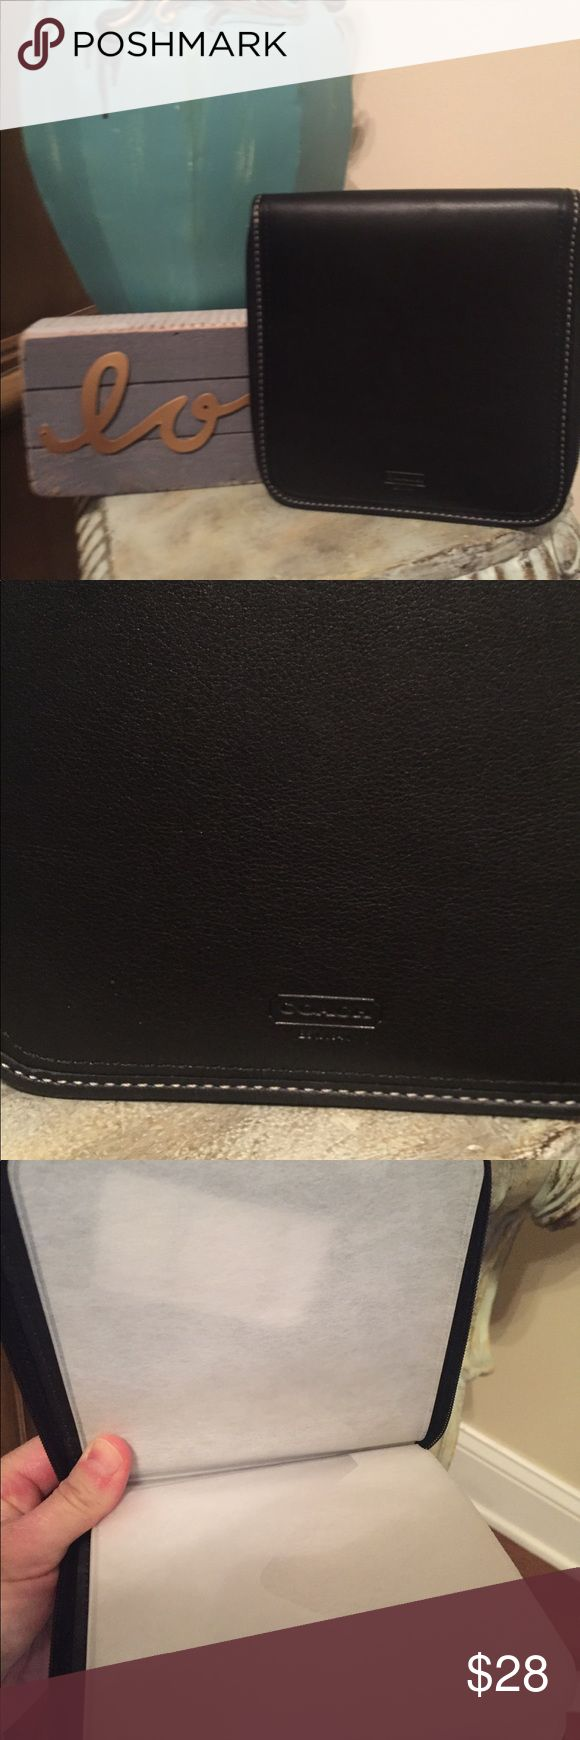 Authentic Coach Black Leather CD Holder Authentic Coach Black Leather CD Case. New with tags! Great gift or to use in your vehicle. Coach Accessories